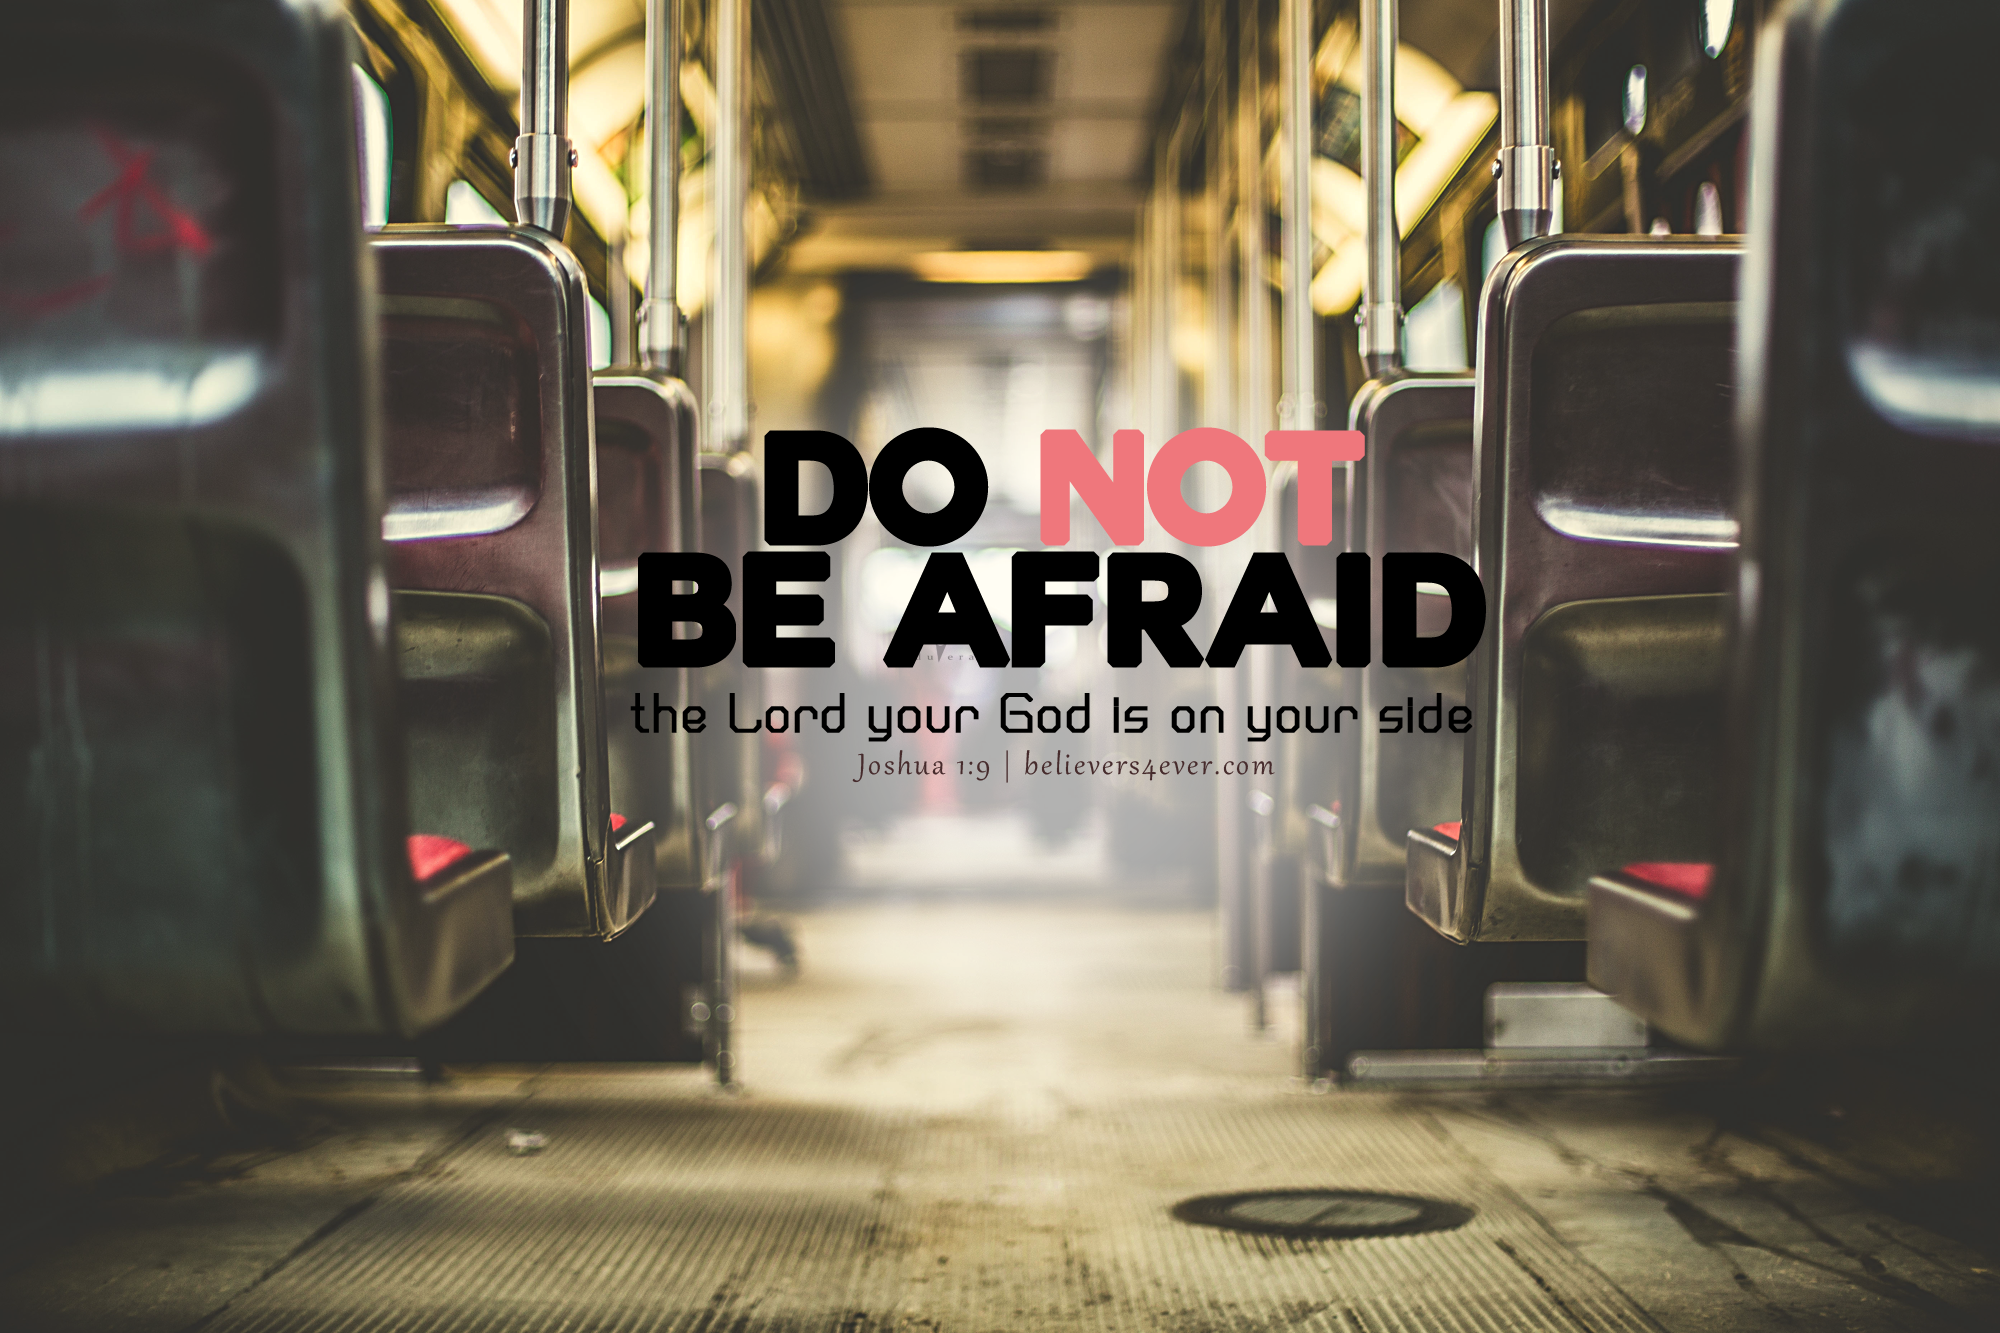 Do not be afraid Joshua 1:9 desktop wallpaper